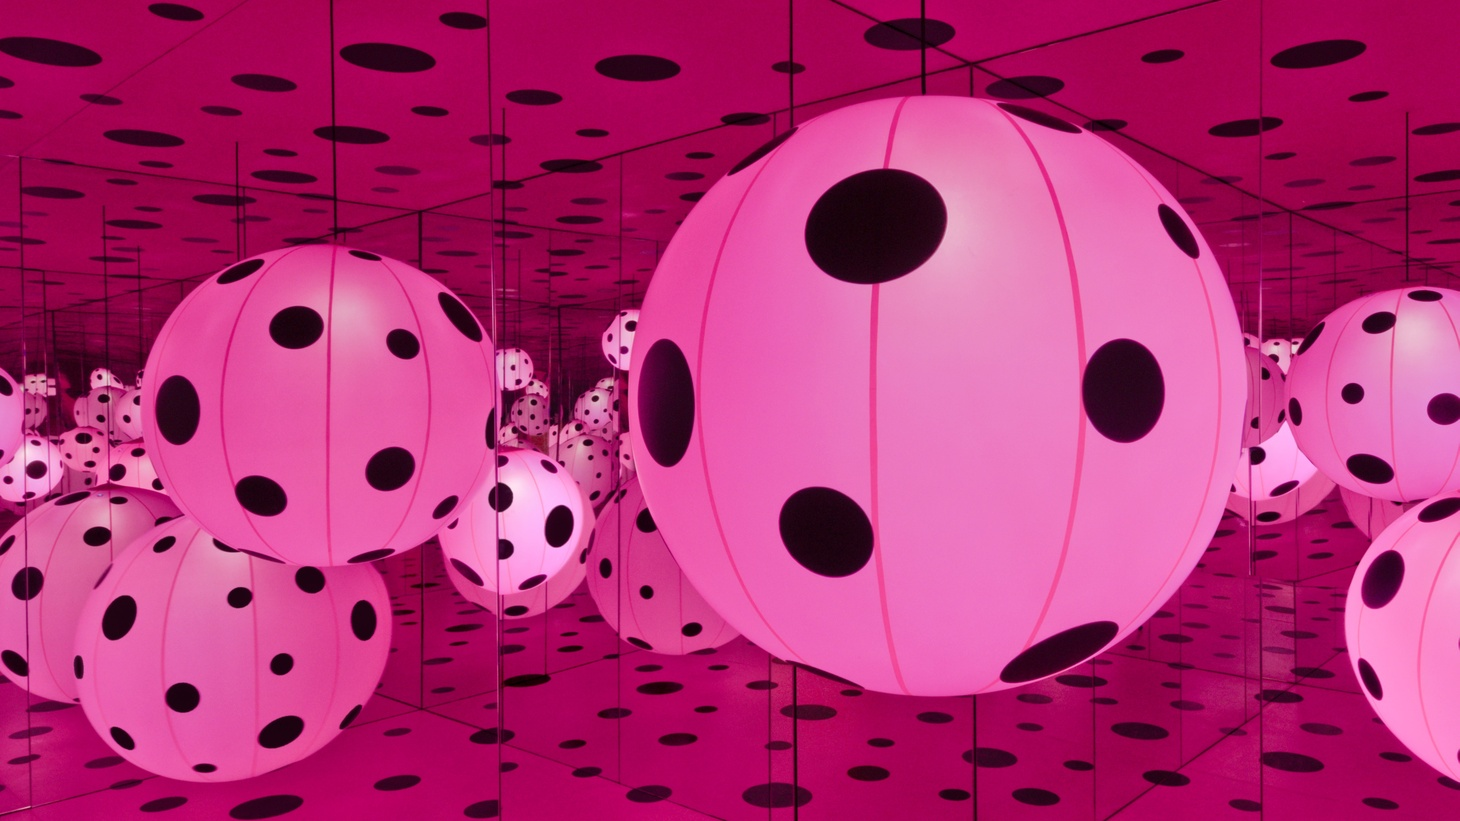 Hunter Drohojowska-Philp talks about Infinity Rooms at The Broad and the Halloween madness of Mexican wrestling with burlesque dancers.